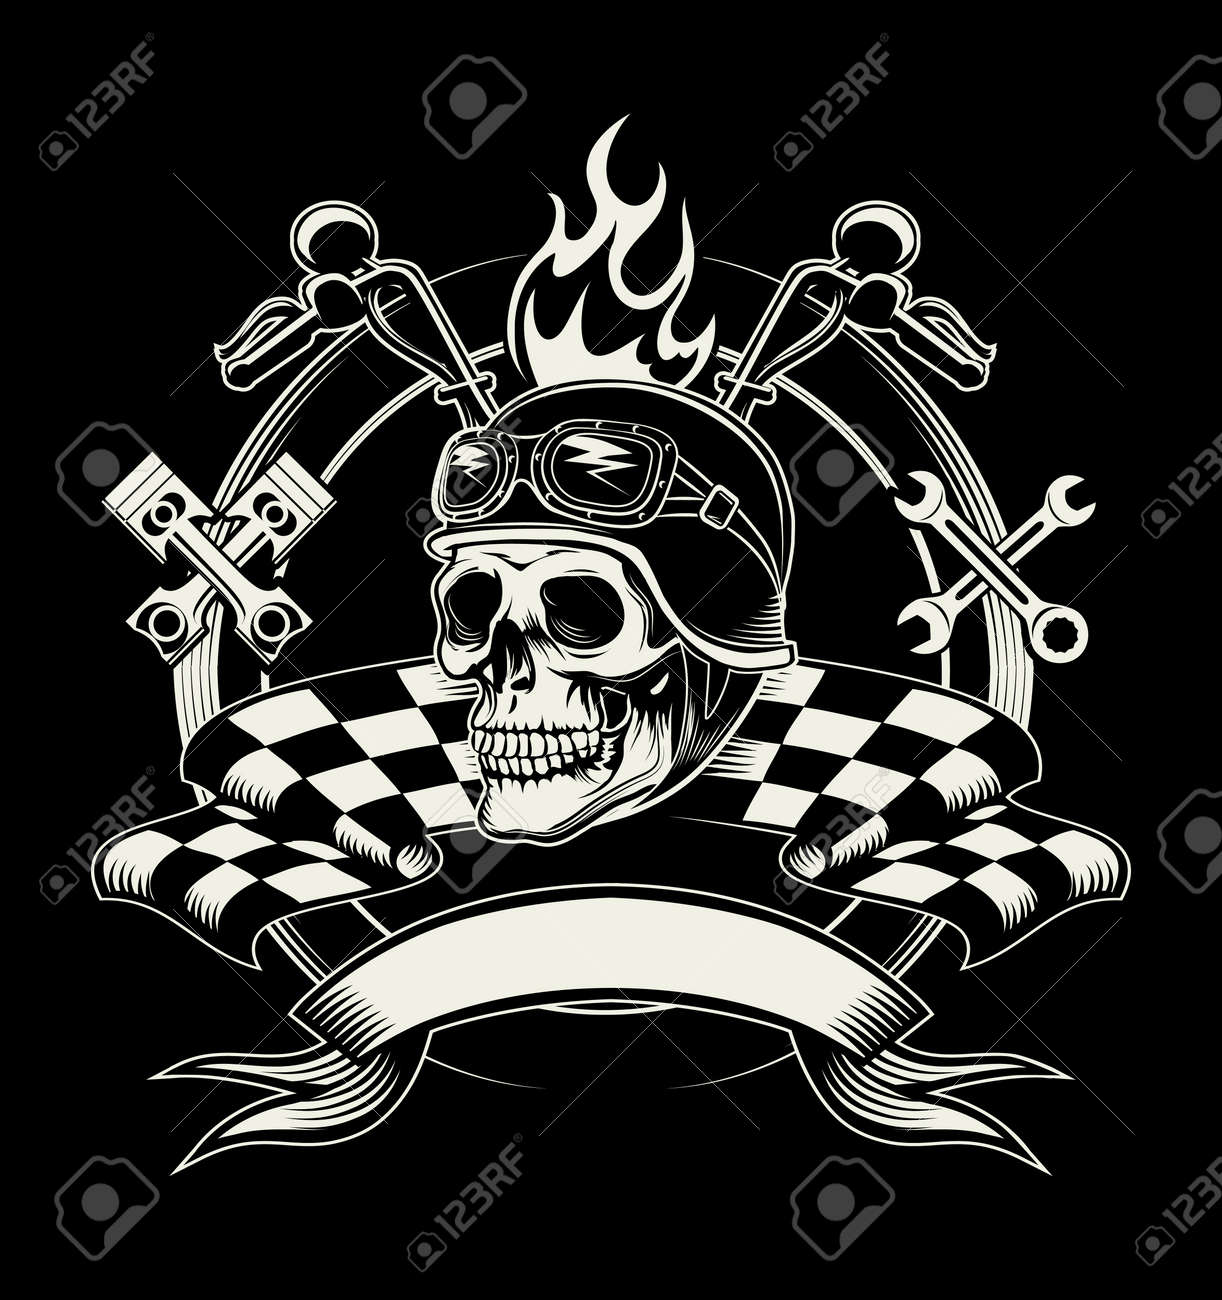 Vector biker emblem with skull or dead motorcycle racer. Speed biker, rider and cross wrench and flag - 166781139